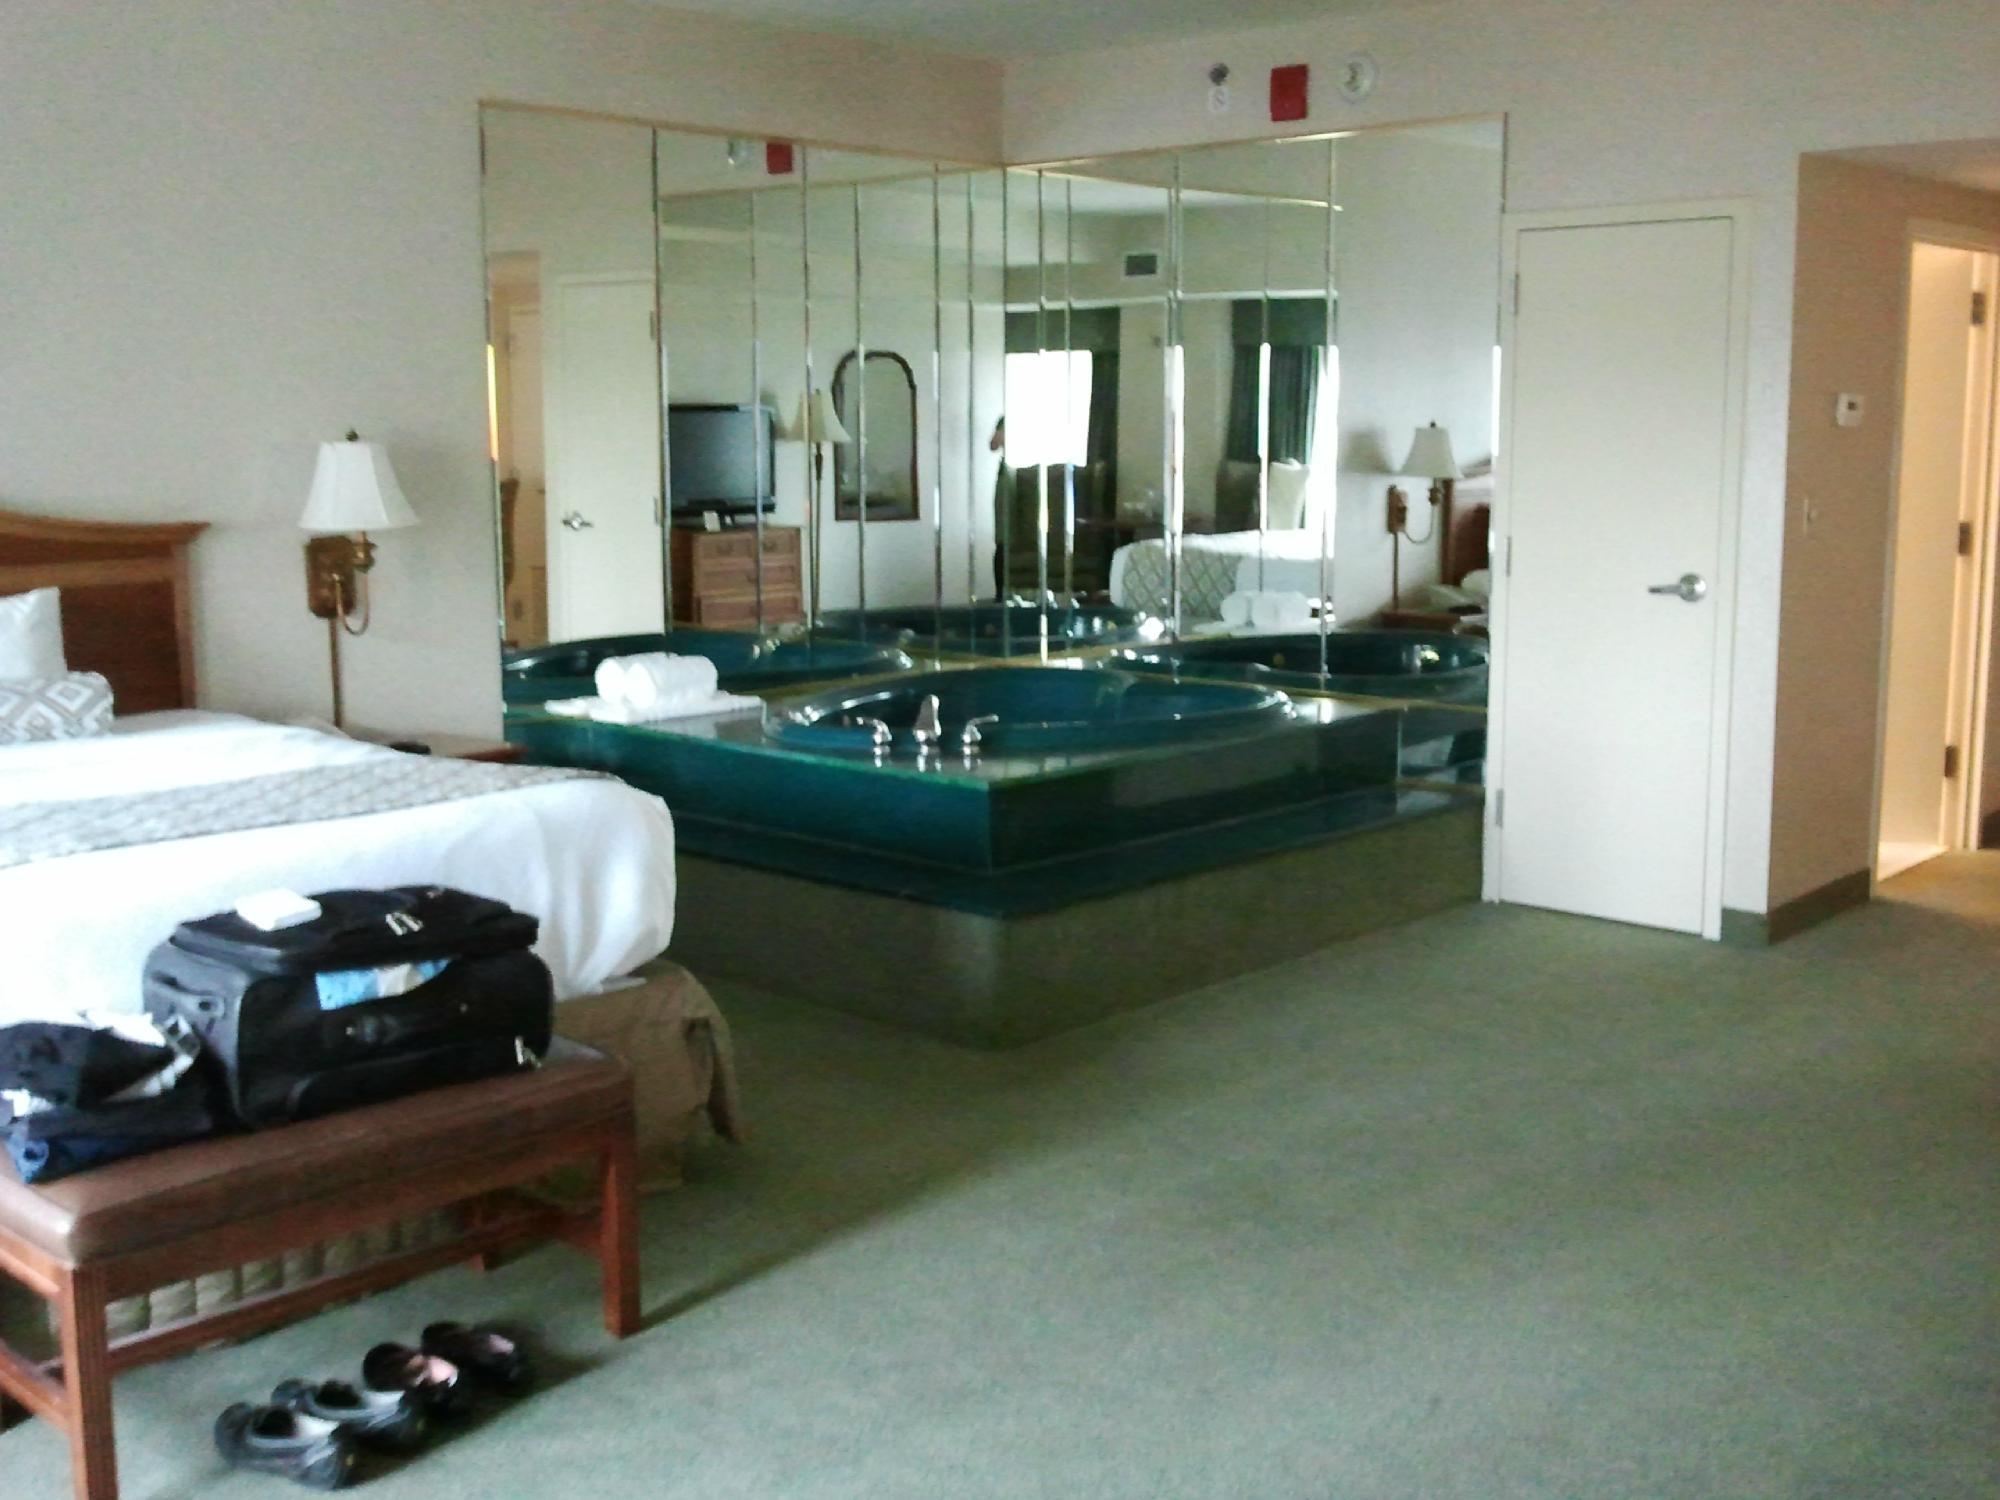 Hotel Hot Tub Suites With Jacuzzi In Room Whirlpool Or Jetted Spa